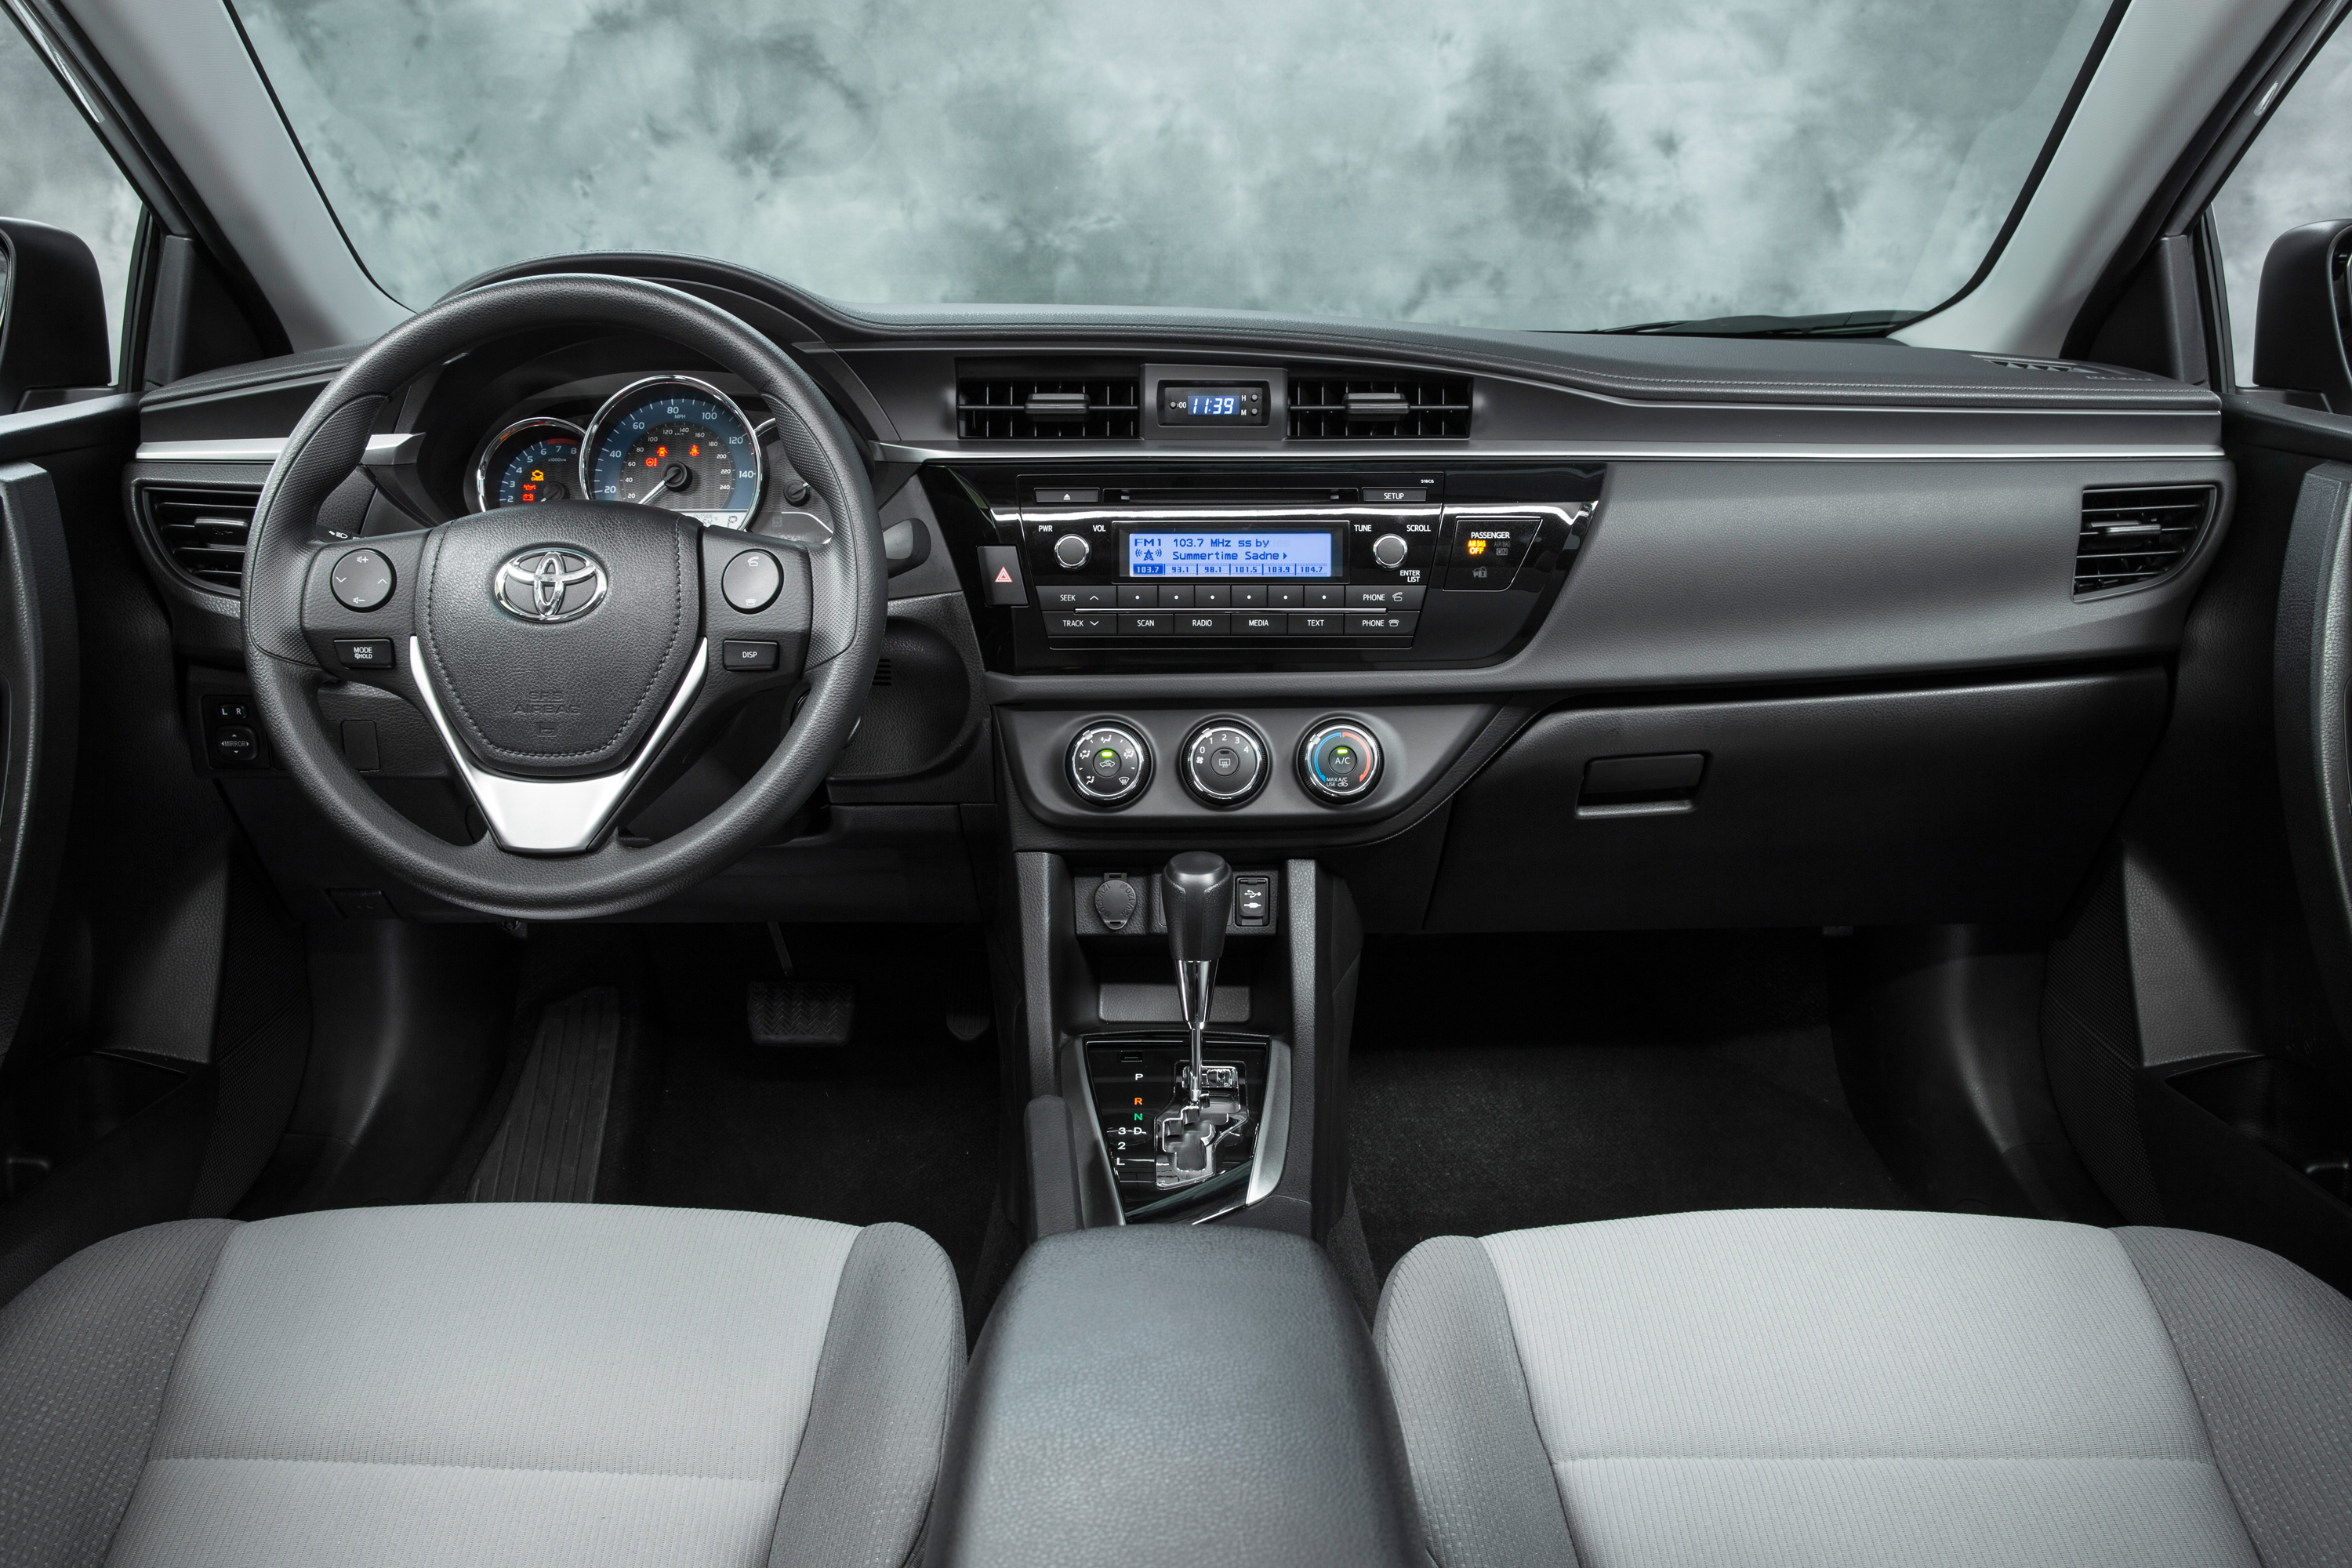 Inside The 2016 Corolla Is Stylish And Welcoming First Thing You Ll Notice A Fluid Dashboard That Creates Continuous Line From Each Side Of